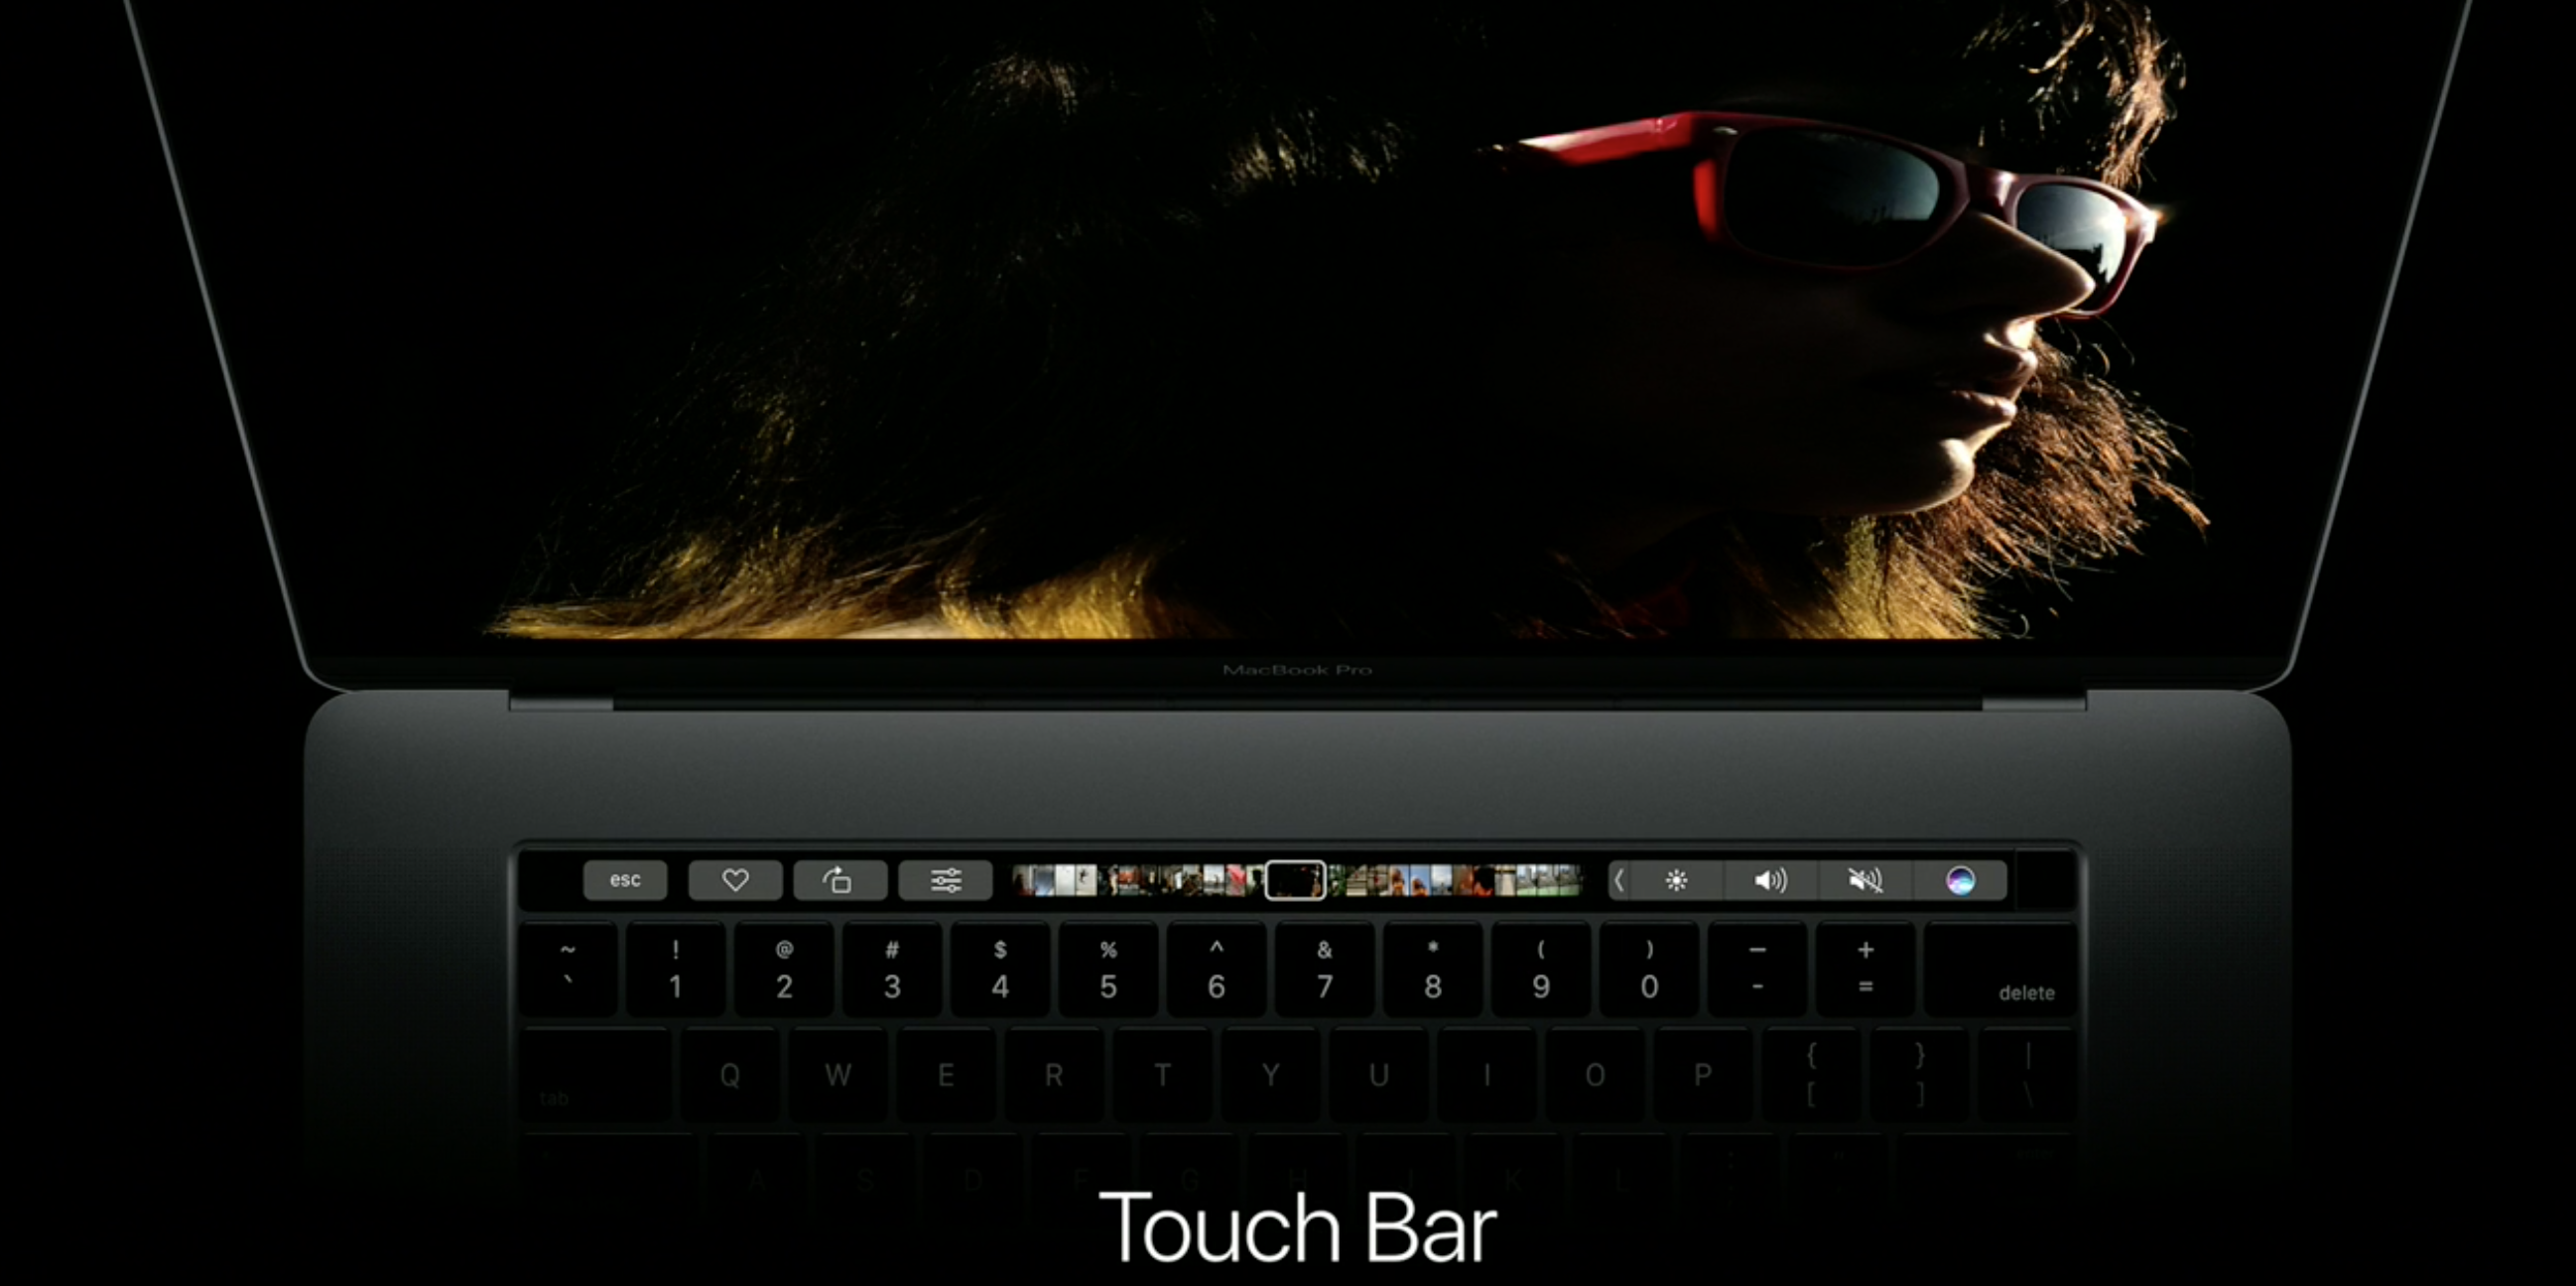 MacBook event News Hub/Live Blog: Watch Apple unveil new ...